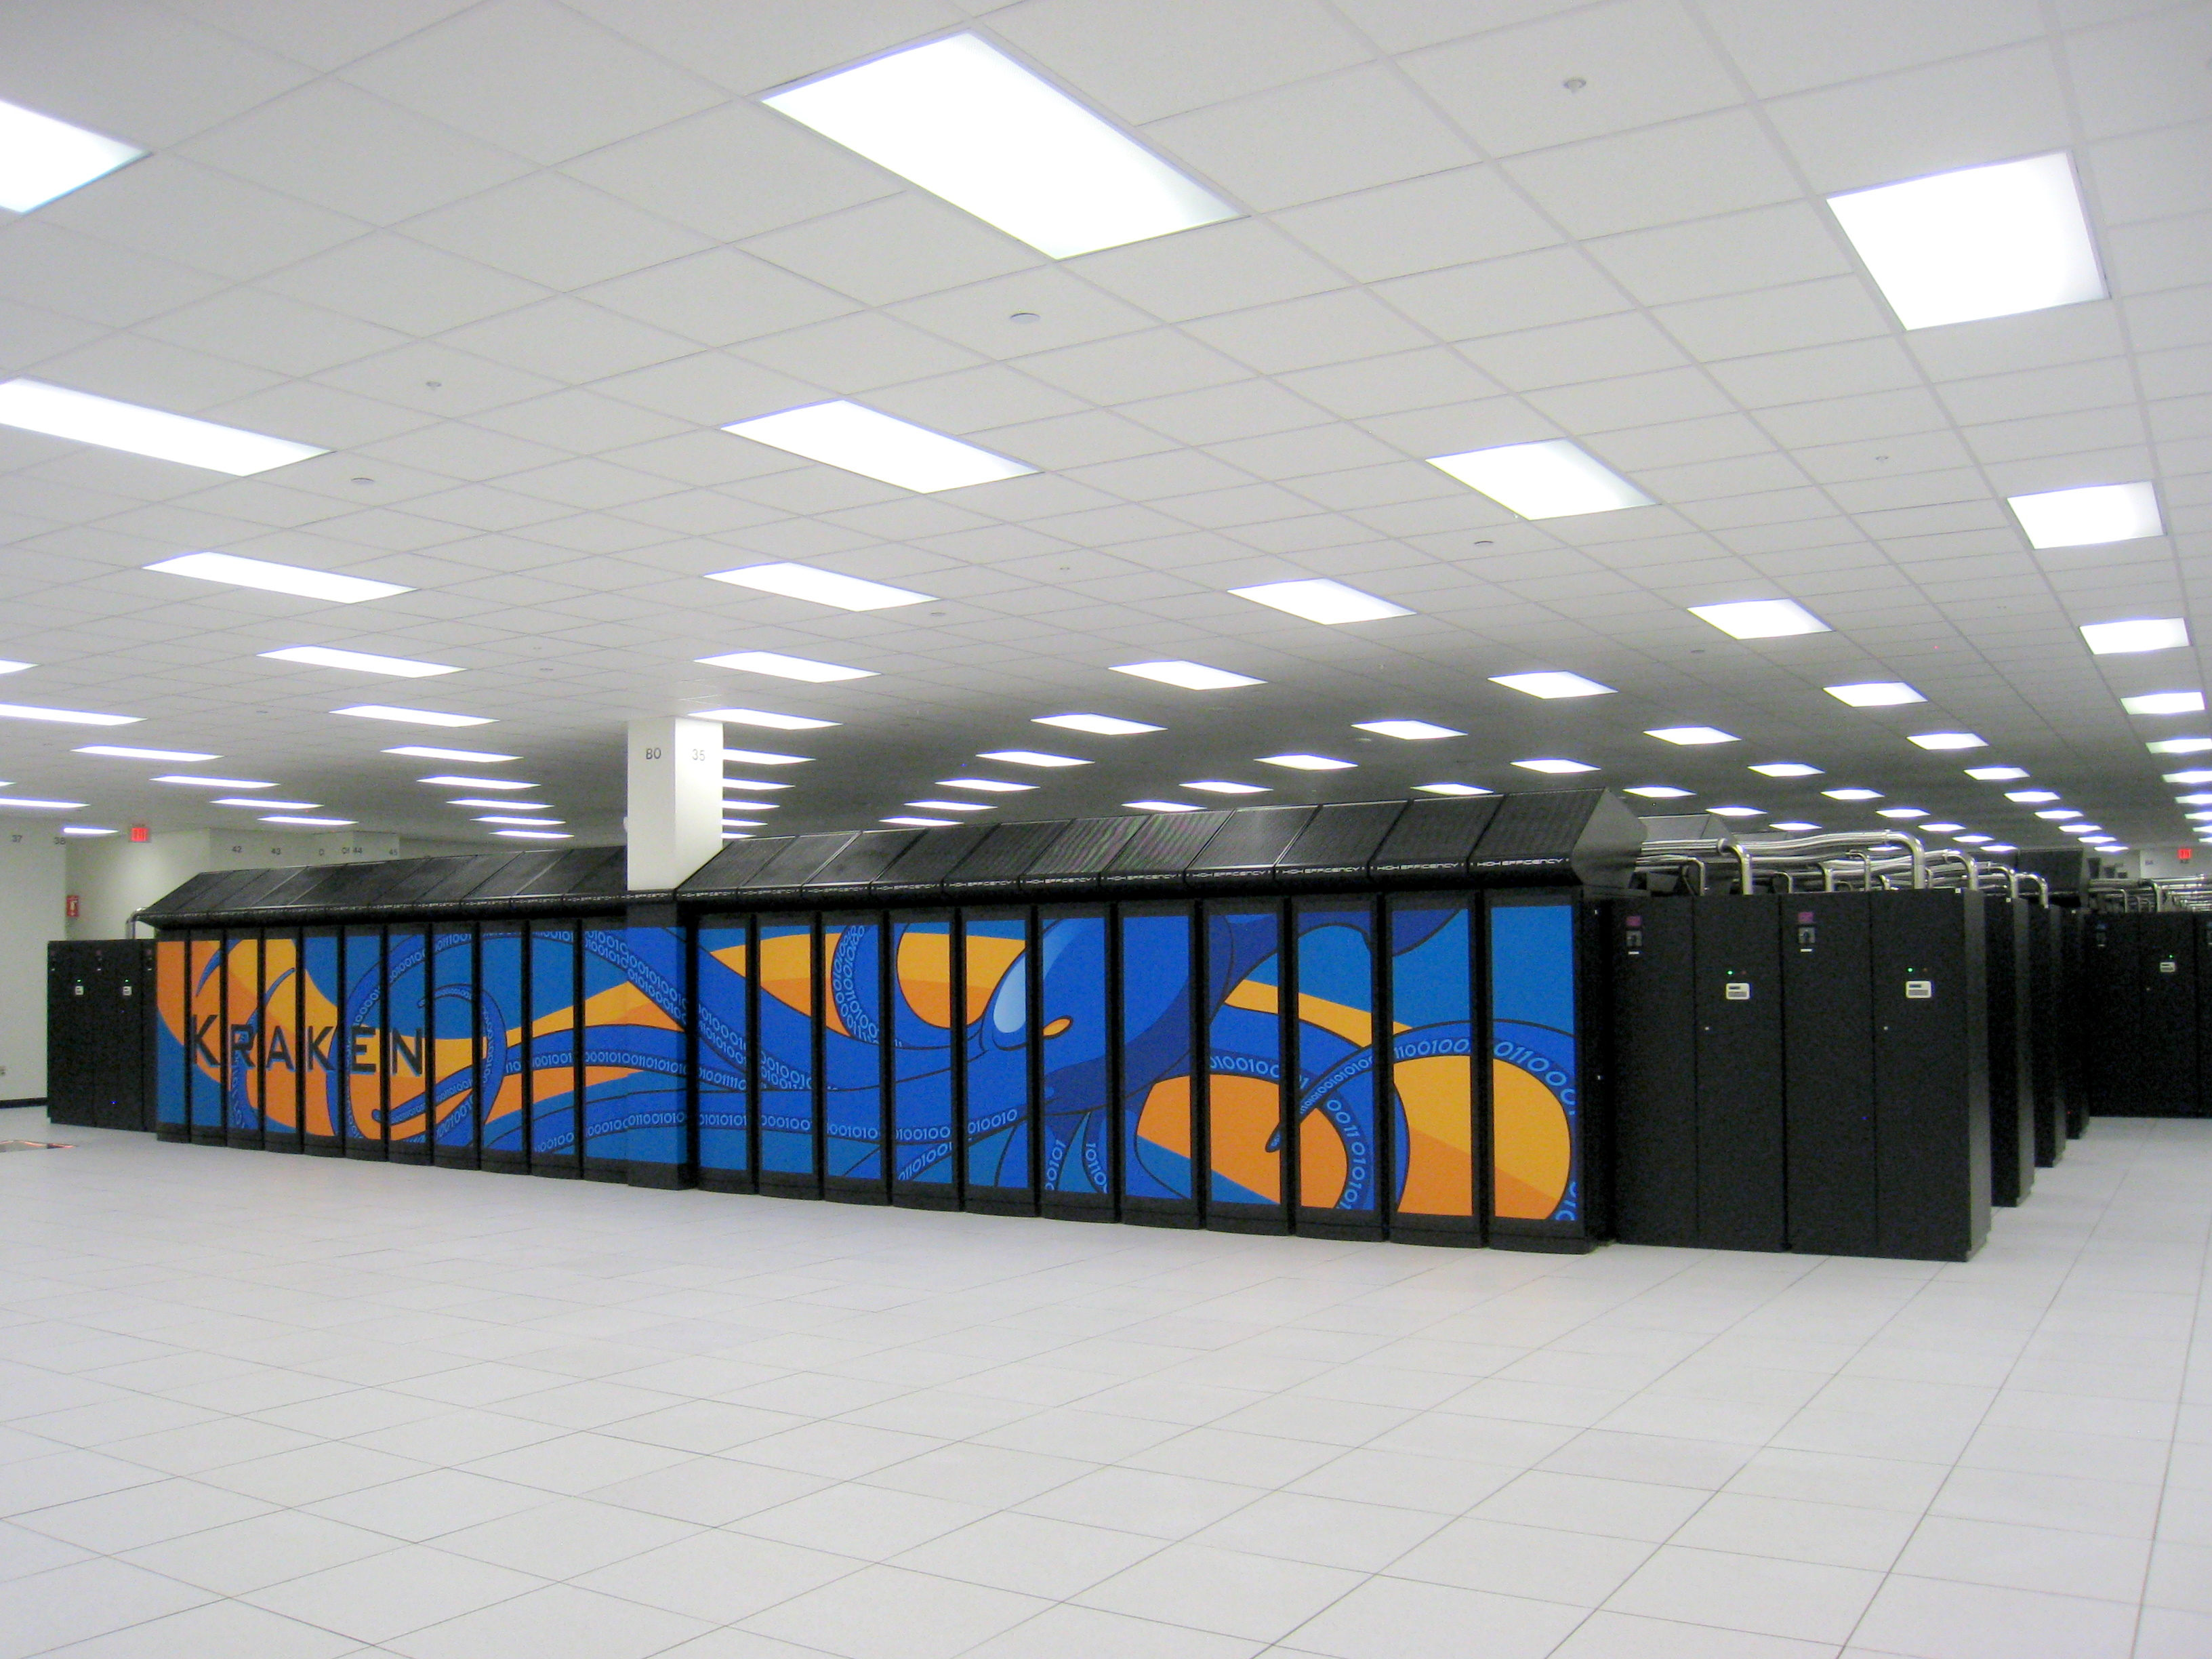 Cray XT5 Supercomputer